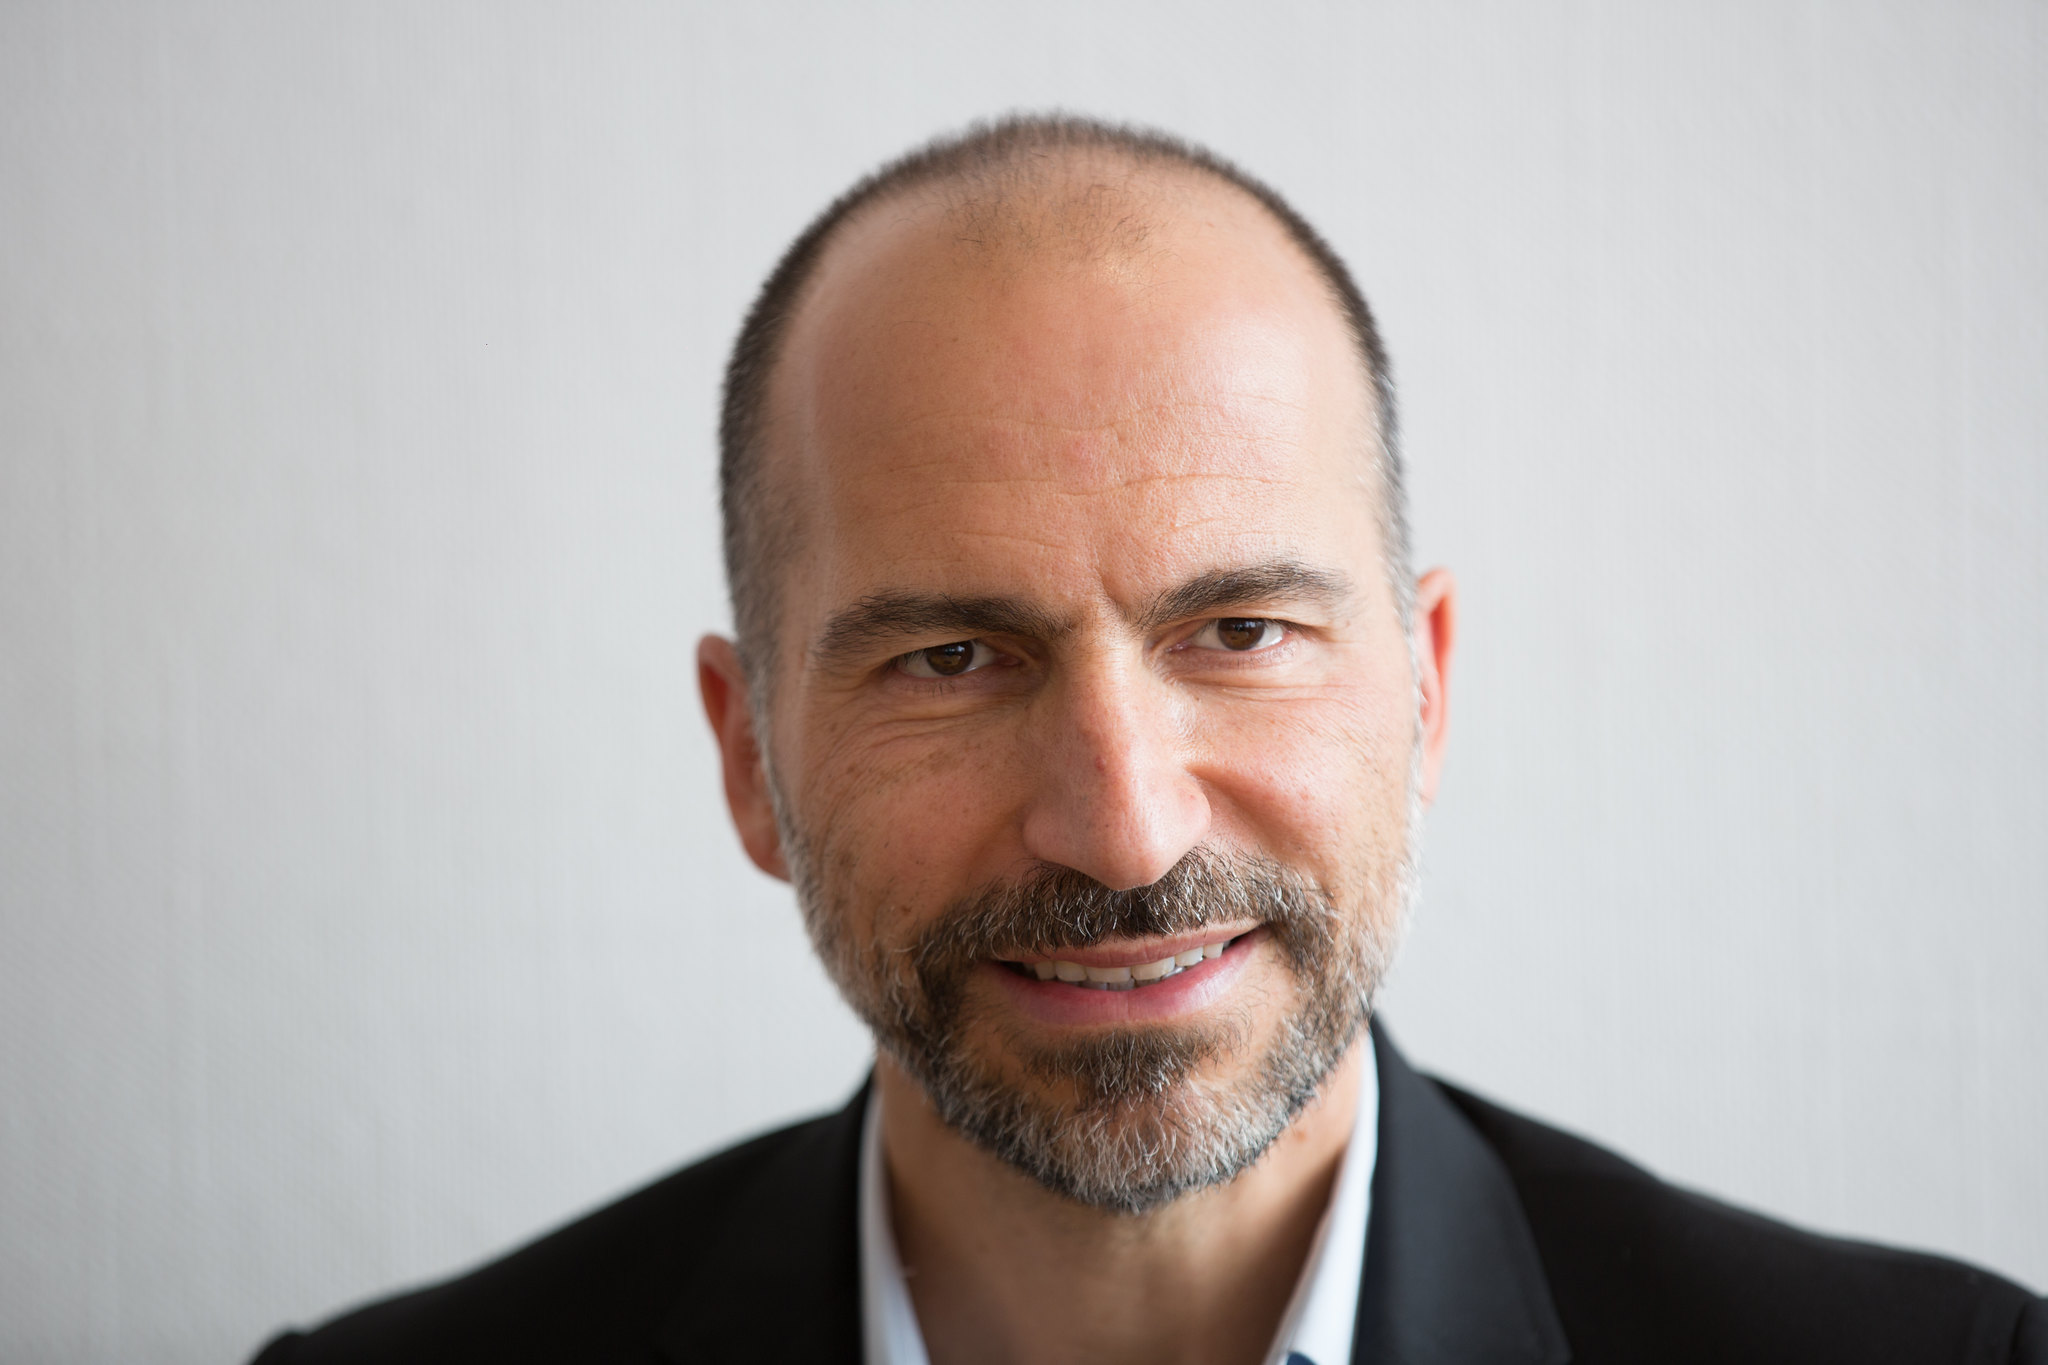 Uber CEO picture